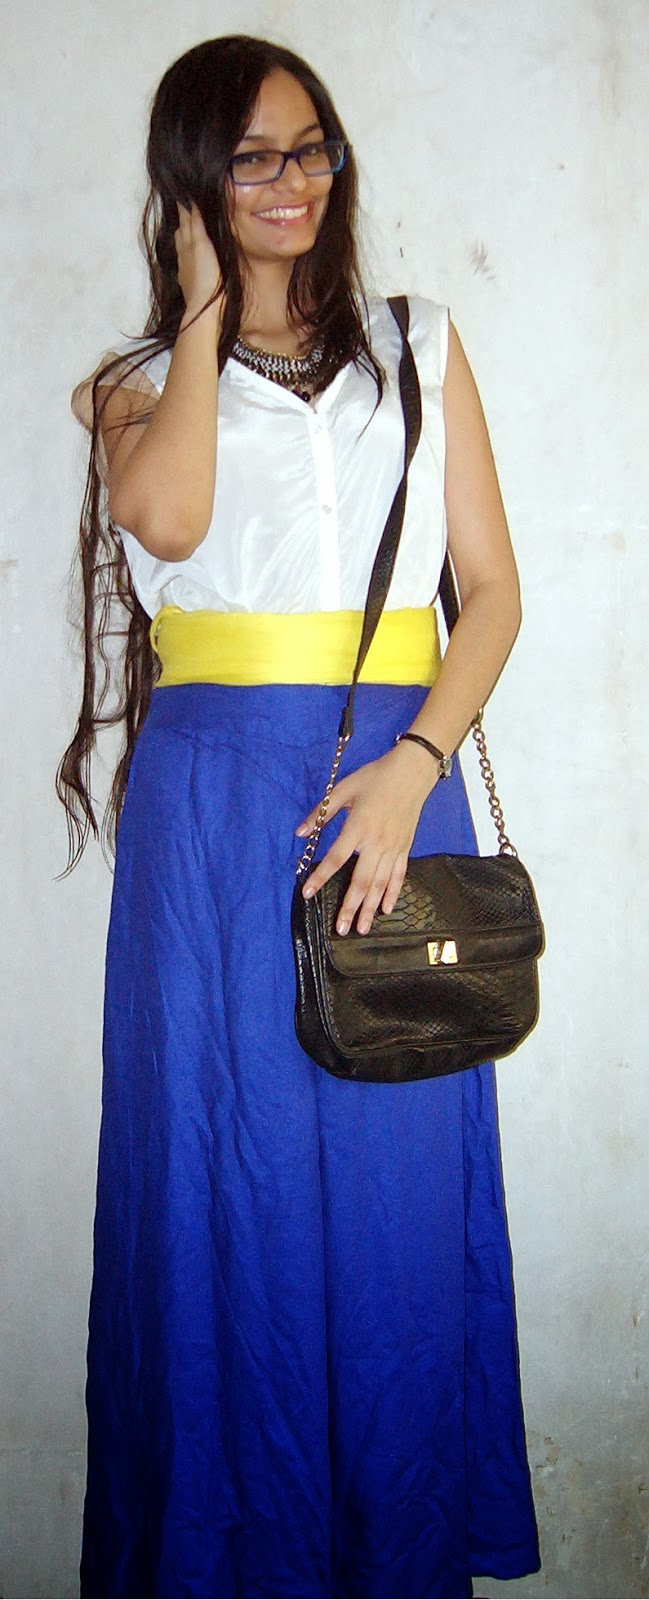 geek chic, how to wear oversized clothing, mumbai fashion blogger, streetstyle, electric blue palazzos, different ways to wear a scarf